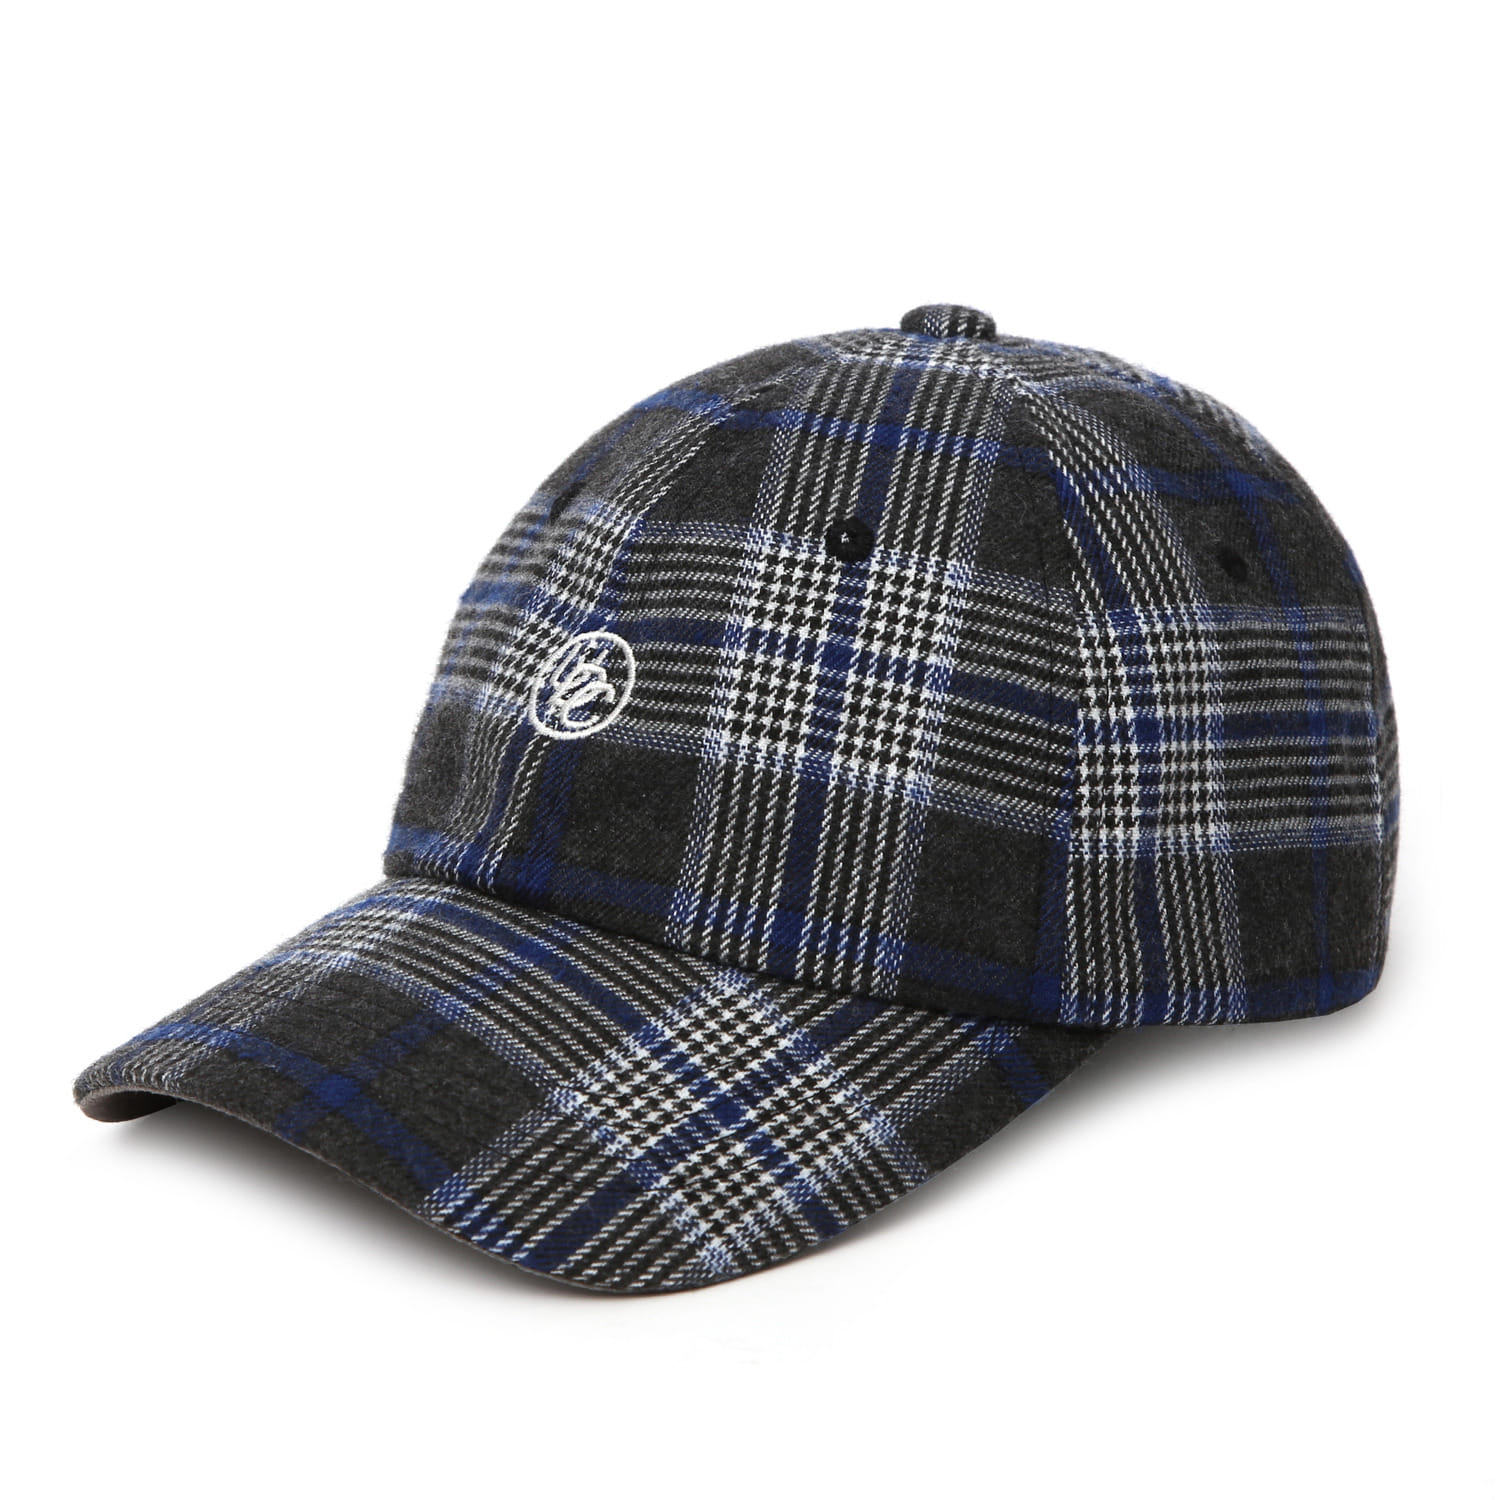 UNION UDC / AUTHENTIC B B / NAVY TARTAN